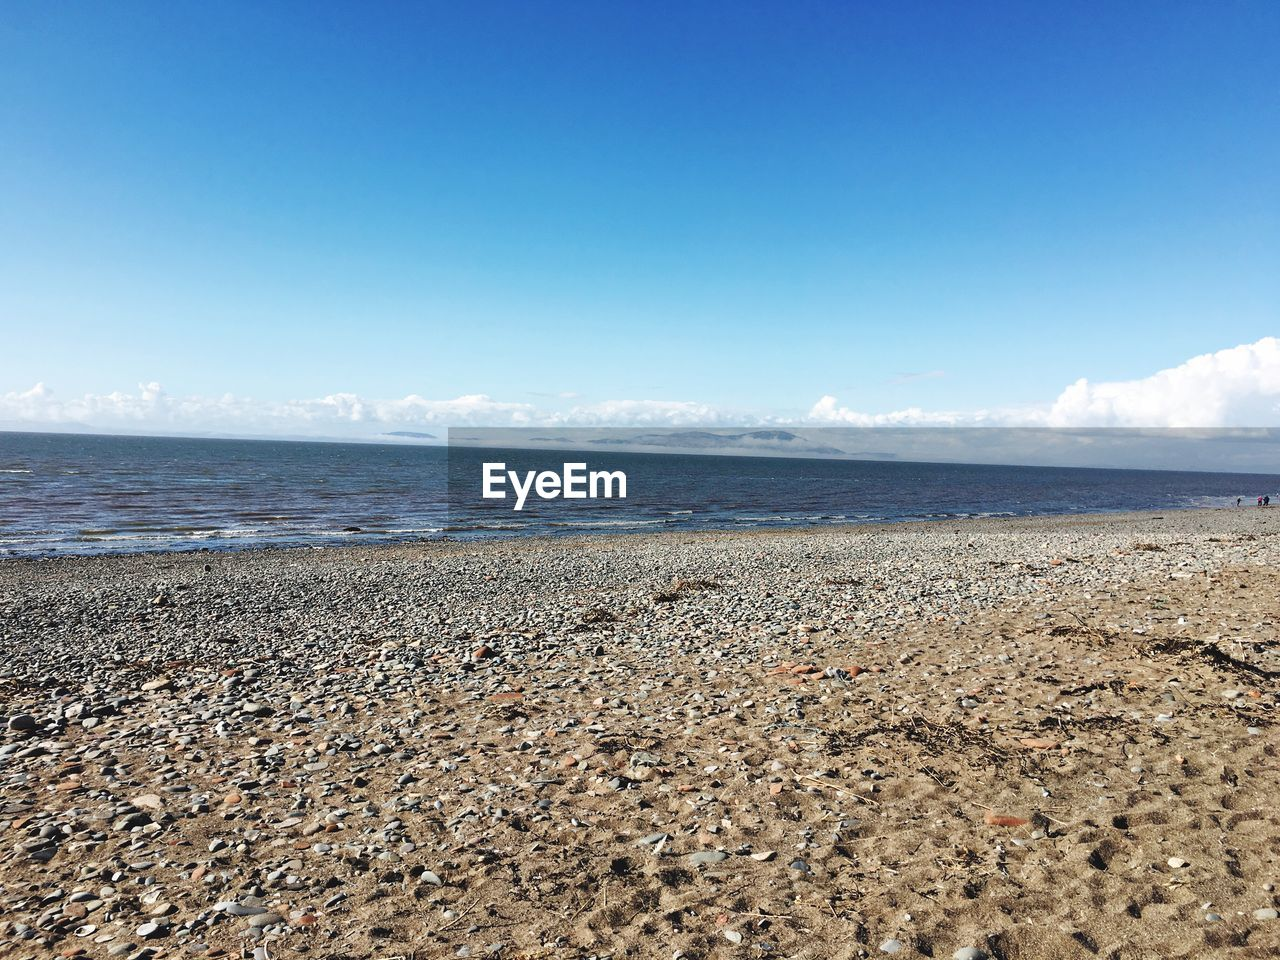 sea, beach, scenics, tranquility, water, nature, beauty in nature, tranquil scene, sky, horizon over water, day, outdoors, blue, no people, sand, pebble beach